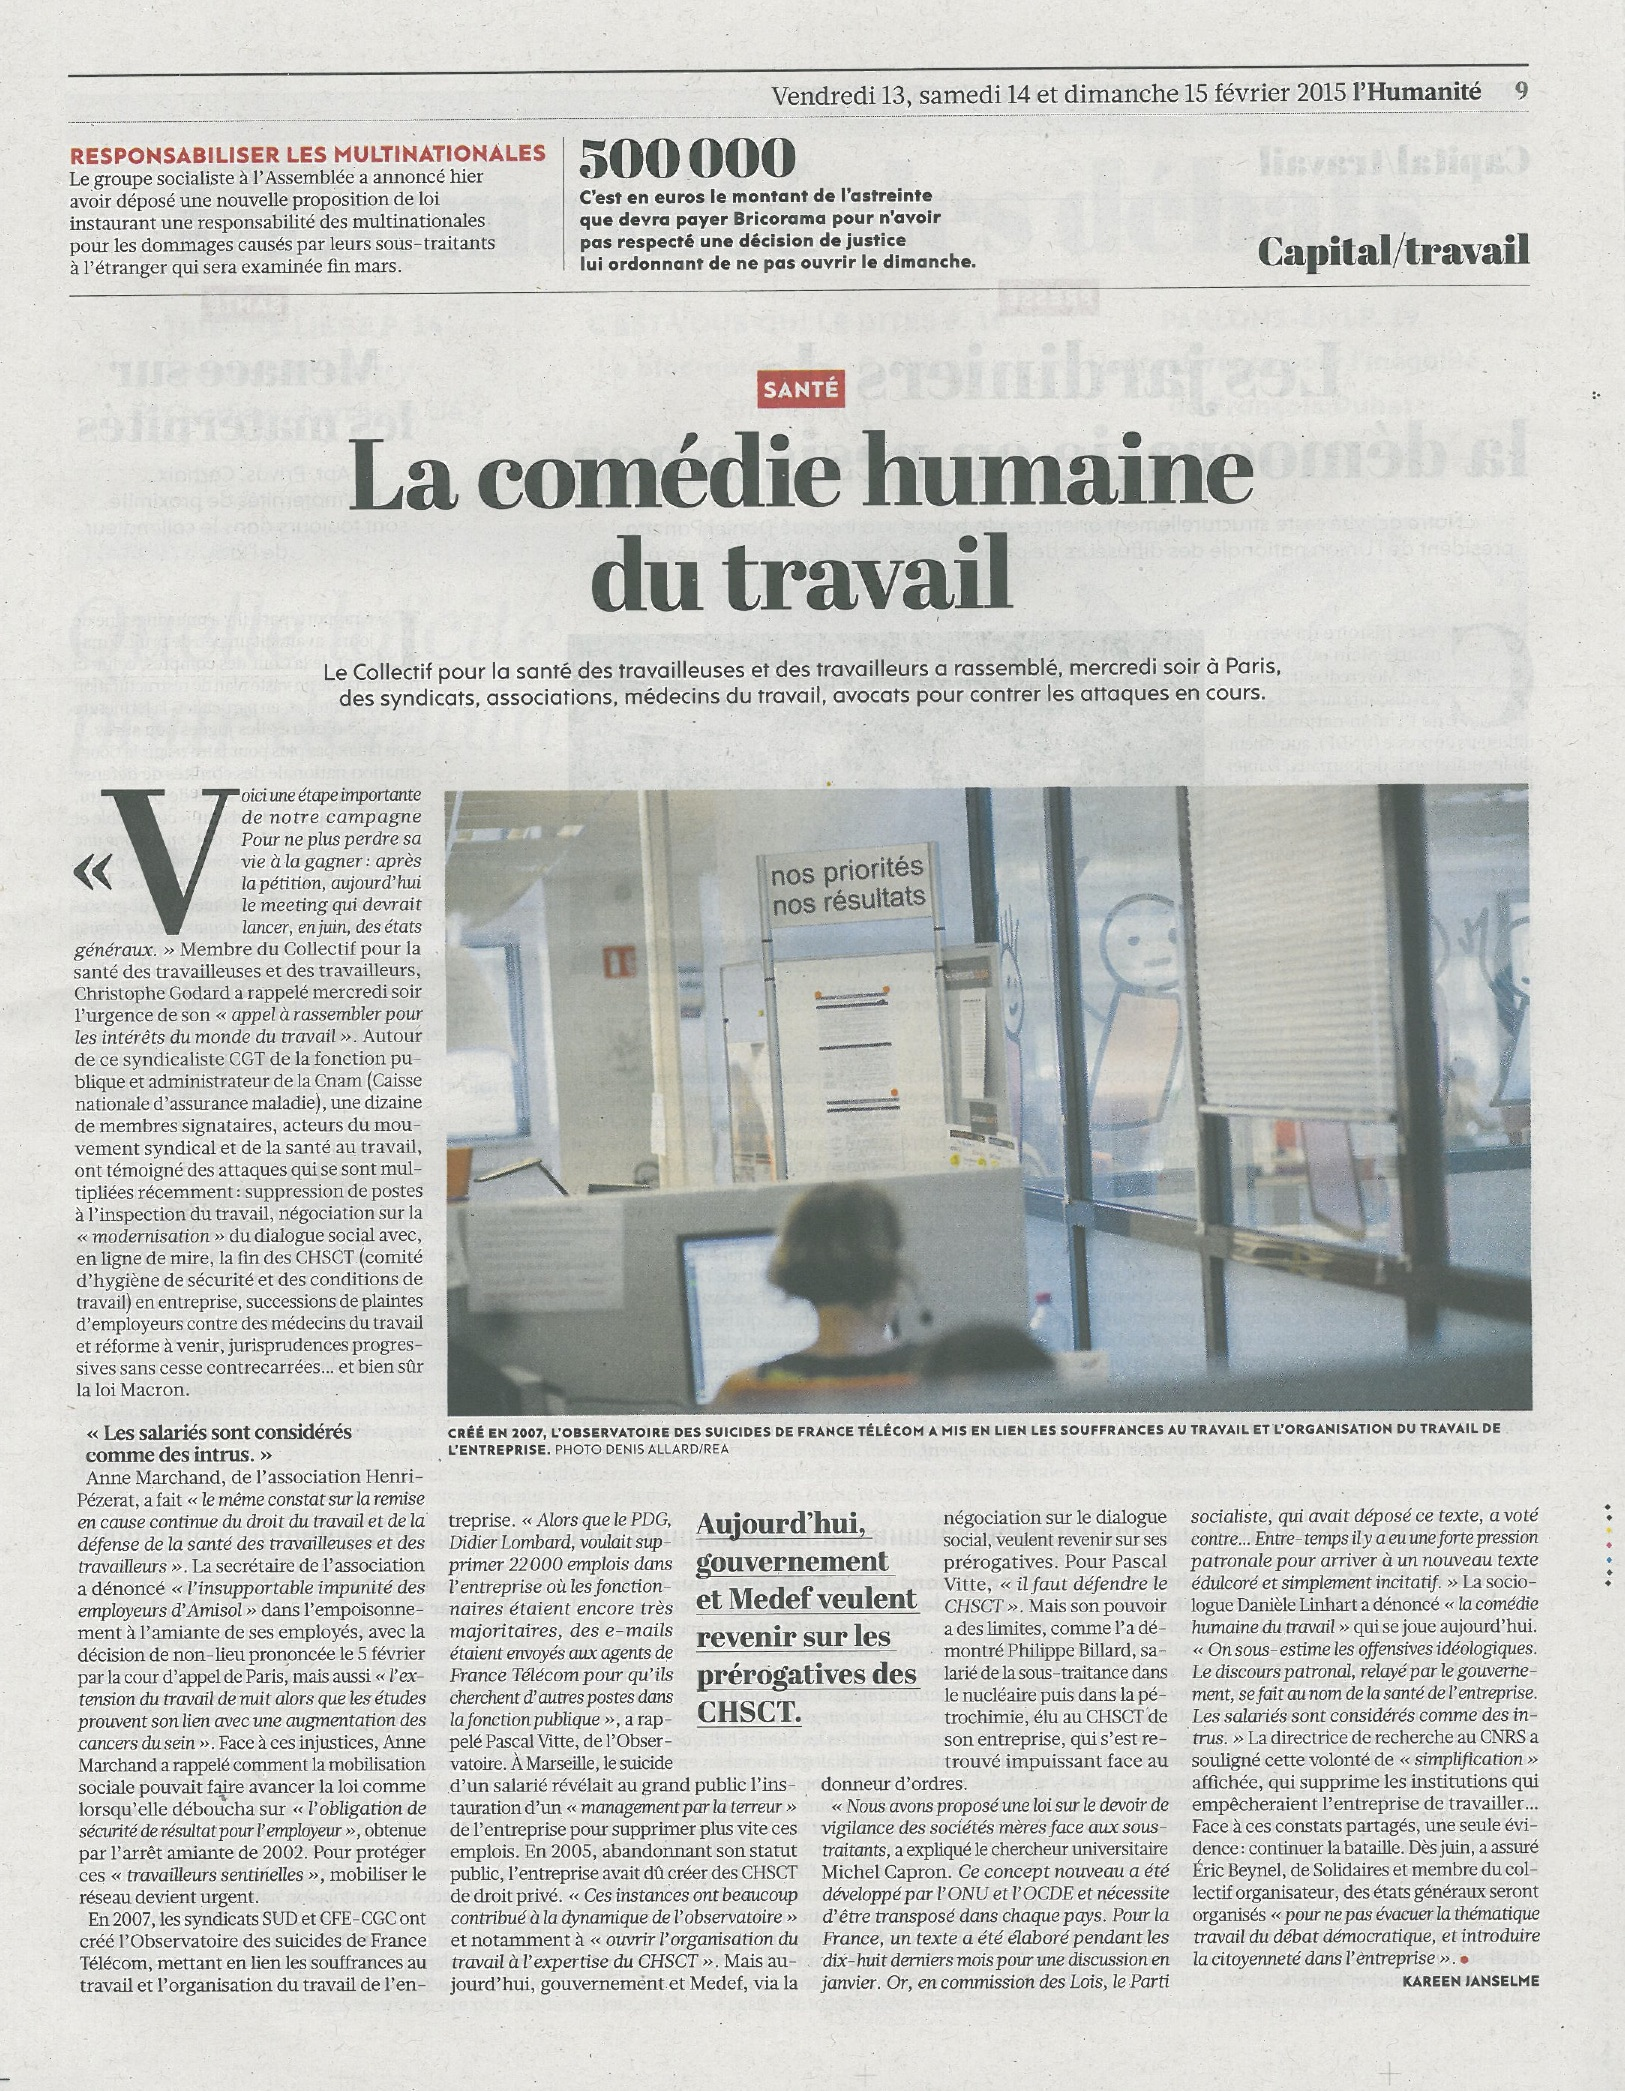 ARTICLE-Huma 13022015 meetingsantétravail